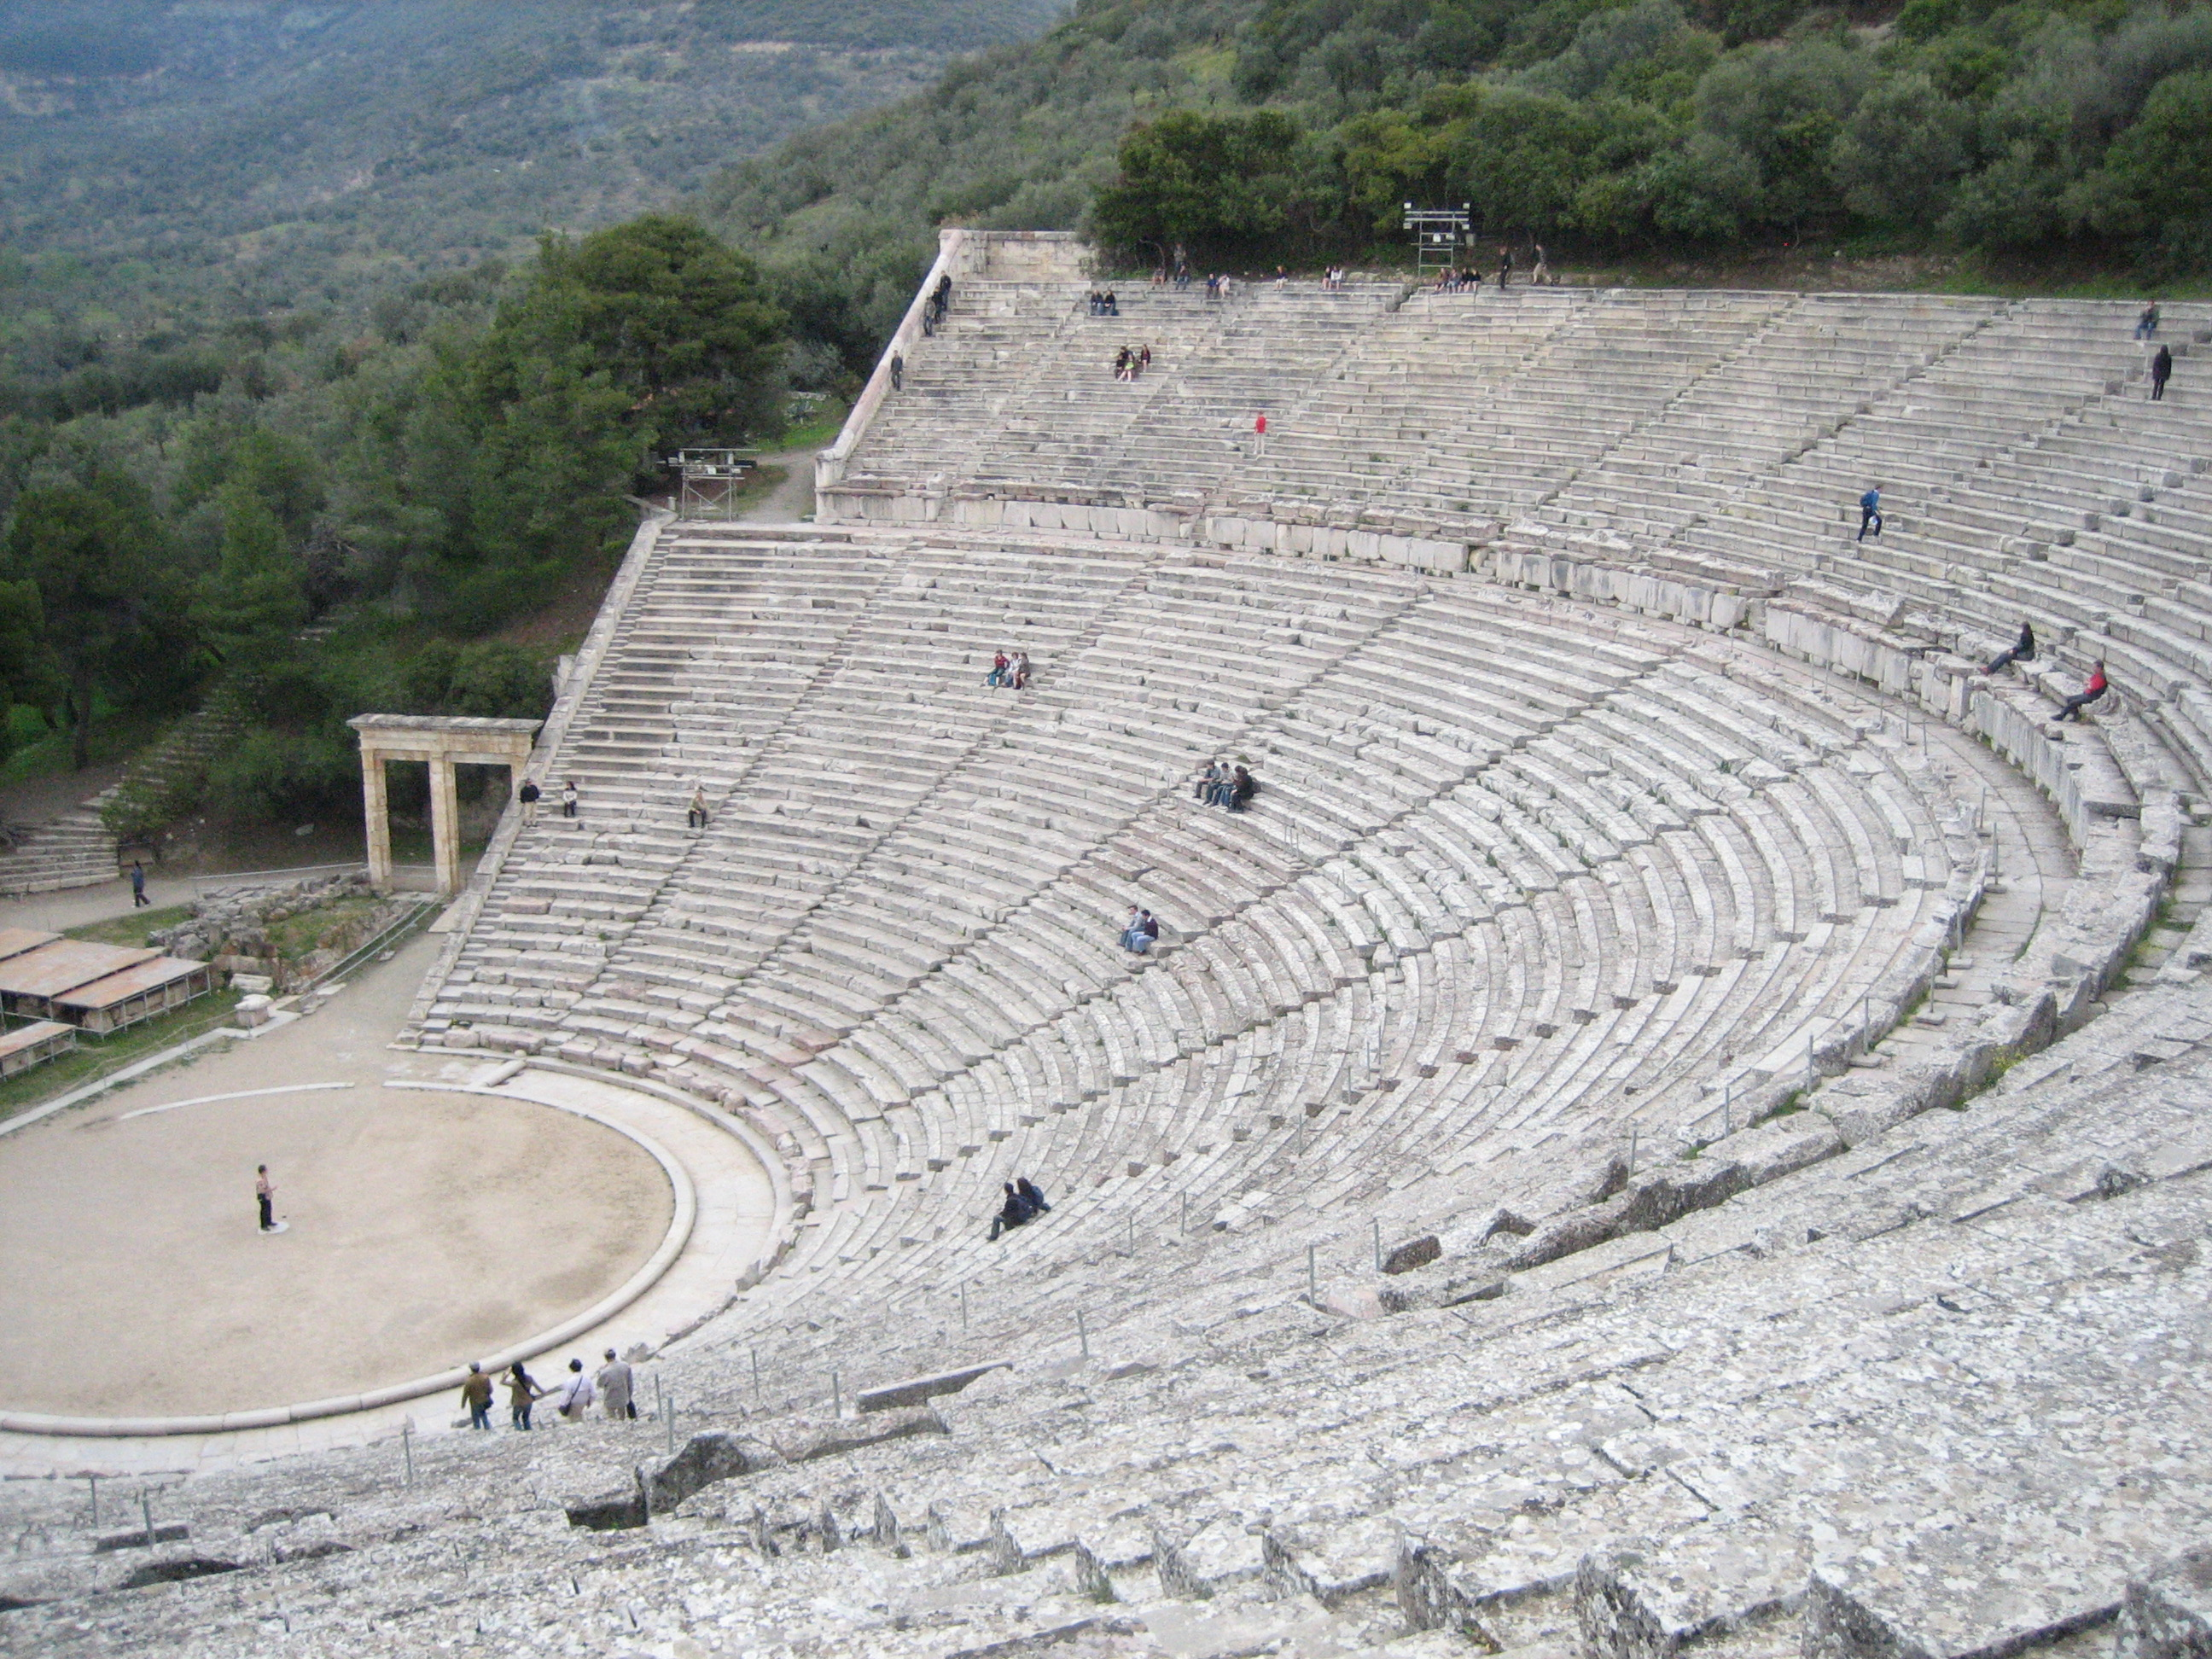 ancient greek theatre essay Oedipus rex or oedipus the king about greek theater soman ed oedipus rex or oedipus the king about greek theater essays for oedipus rex or oedipus the king.